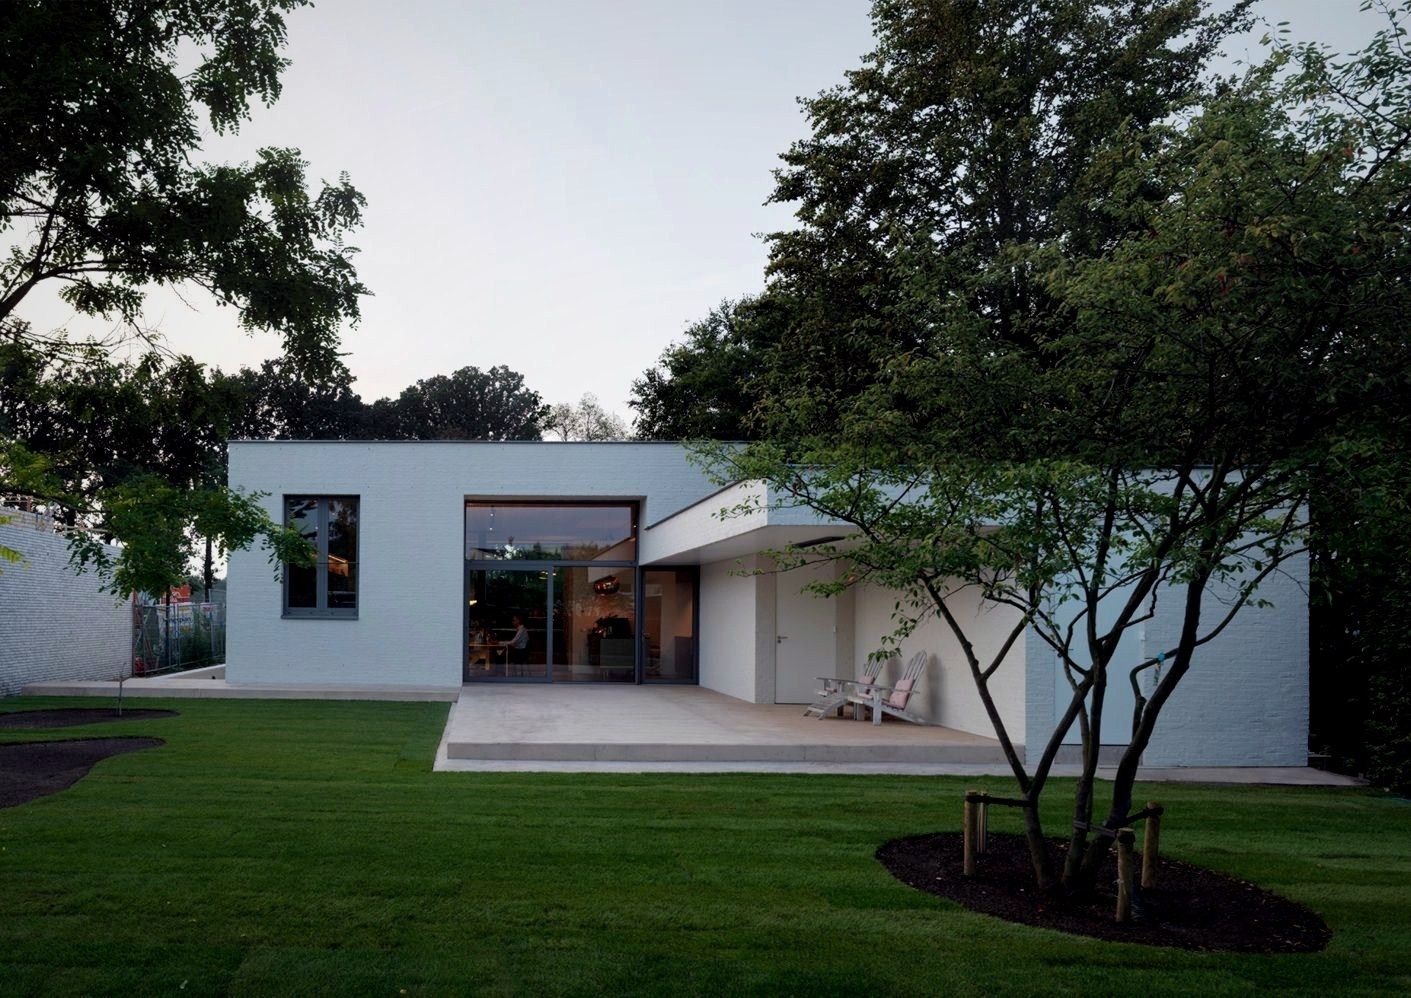 https://elonahome.com/wp-content/uploads/2020/12/Flatroof-design-with-box-architecture-concept-designed-in-modern-character-and-nature-blending-style-4.jpg